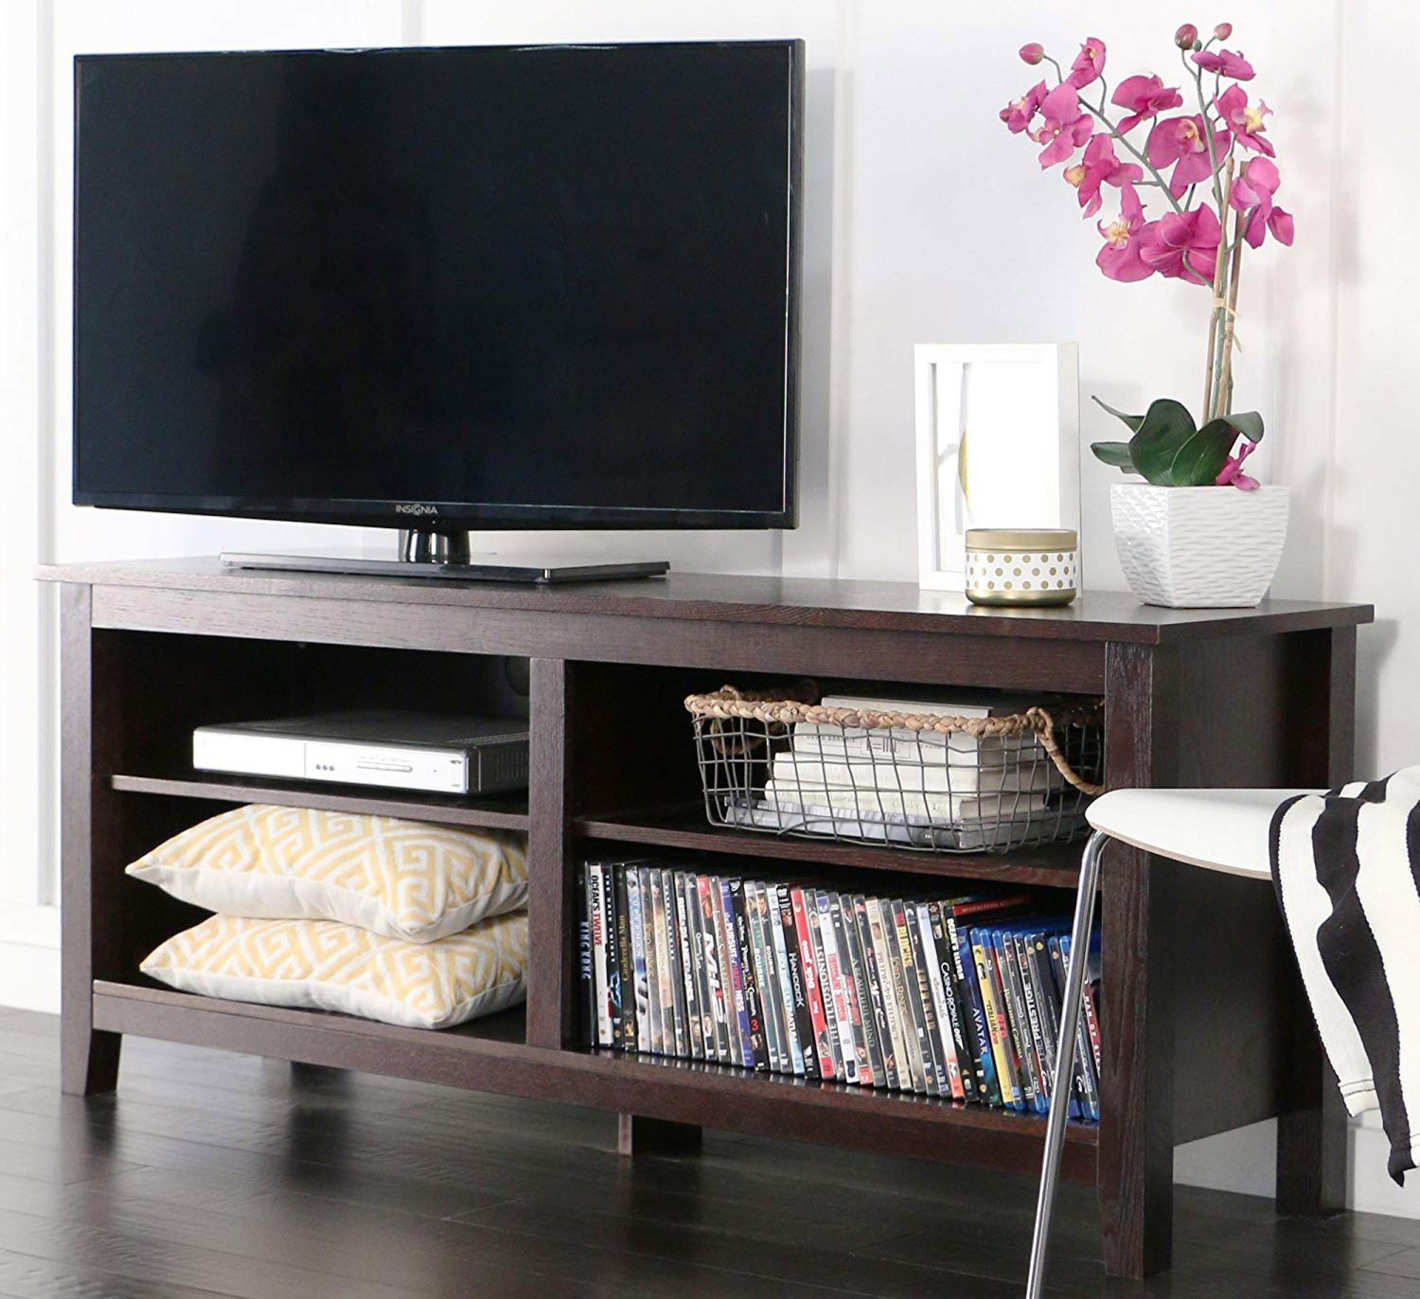 WE Furniture 58-Inch Wood TV Stand Storage Console